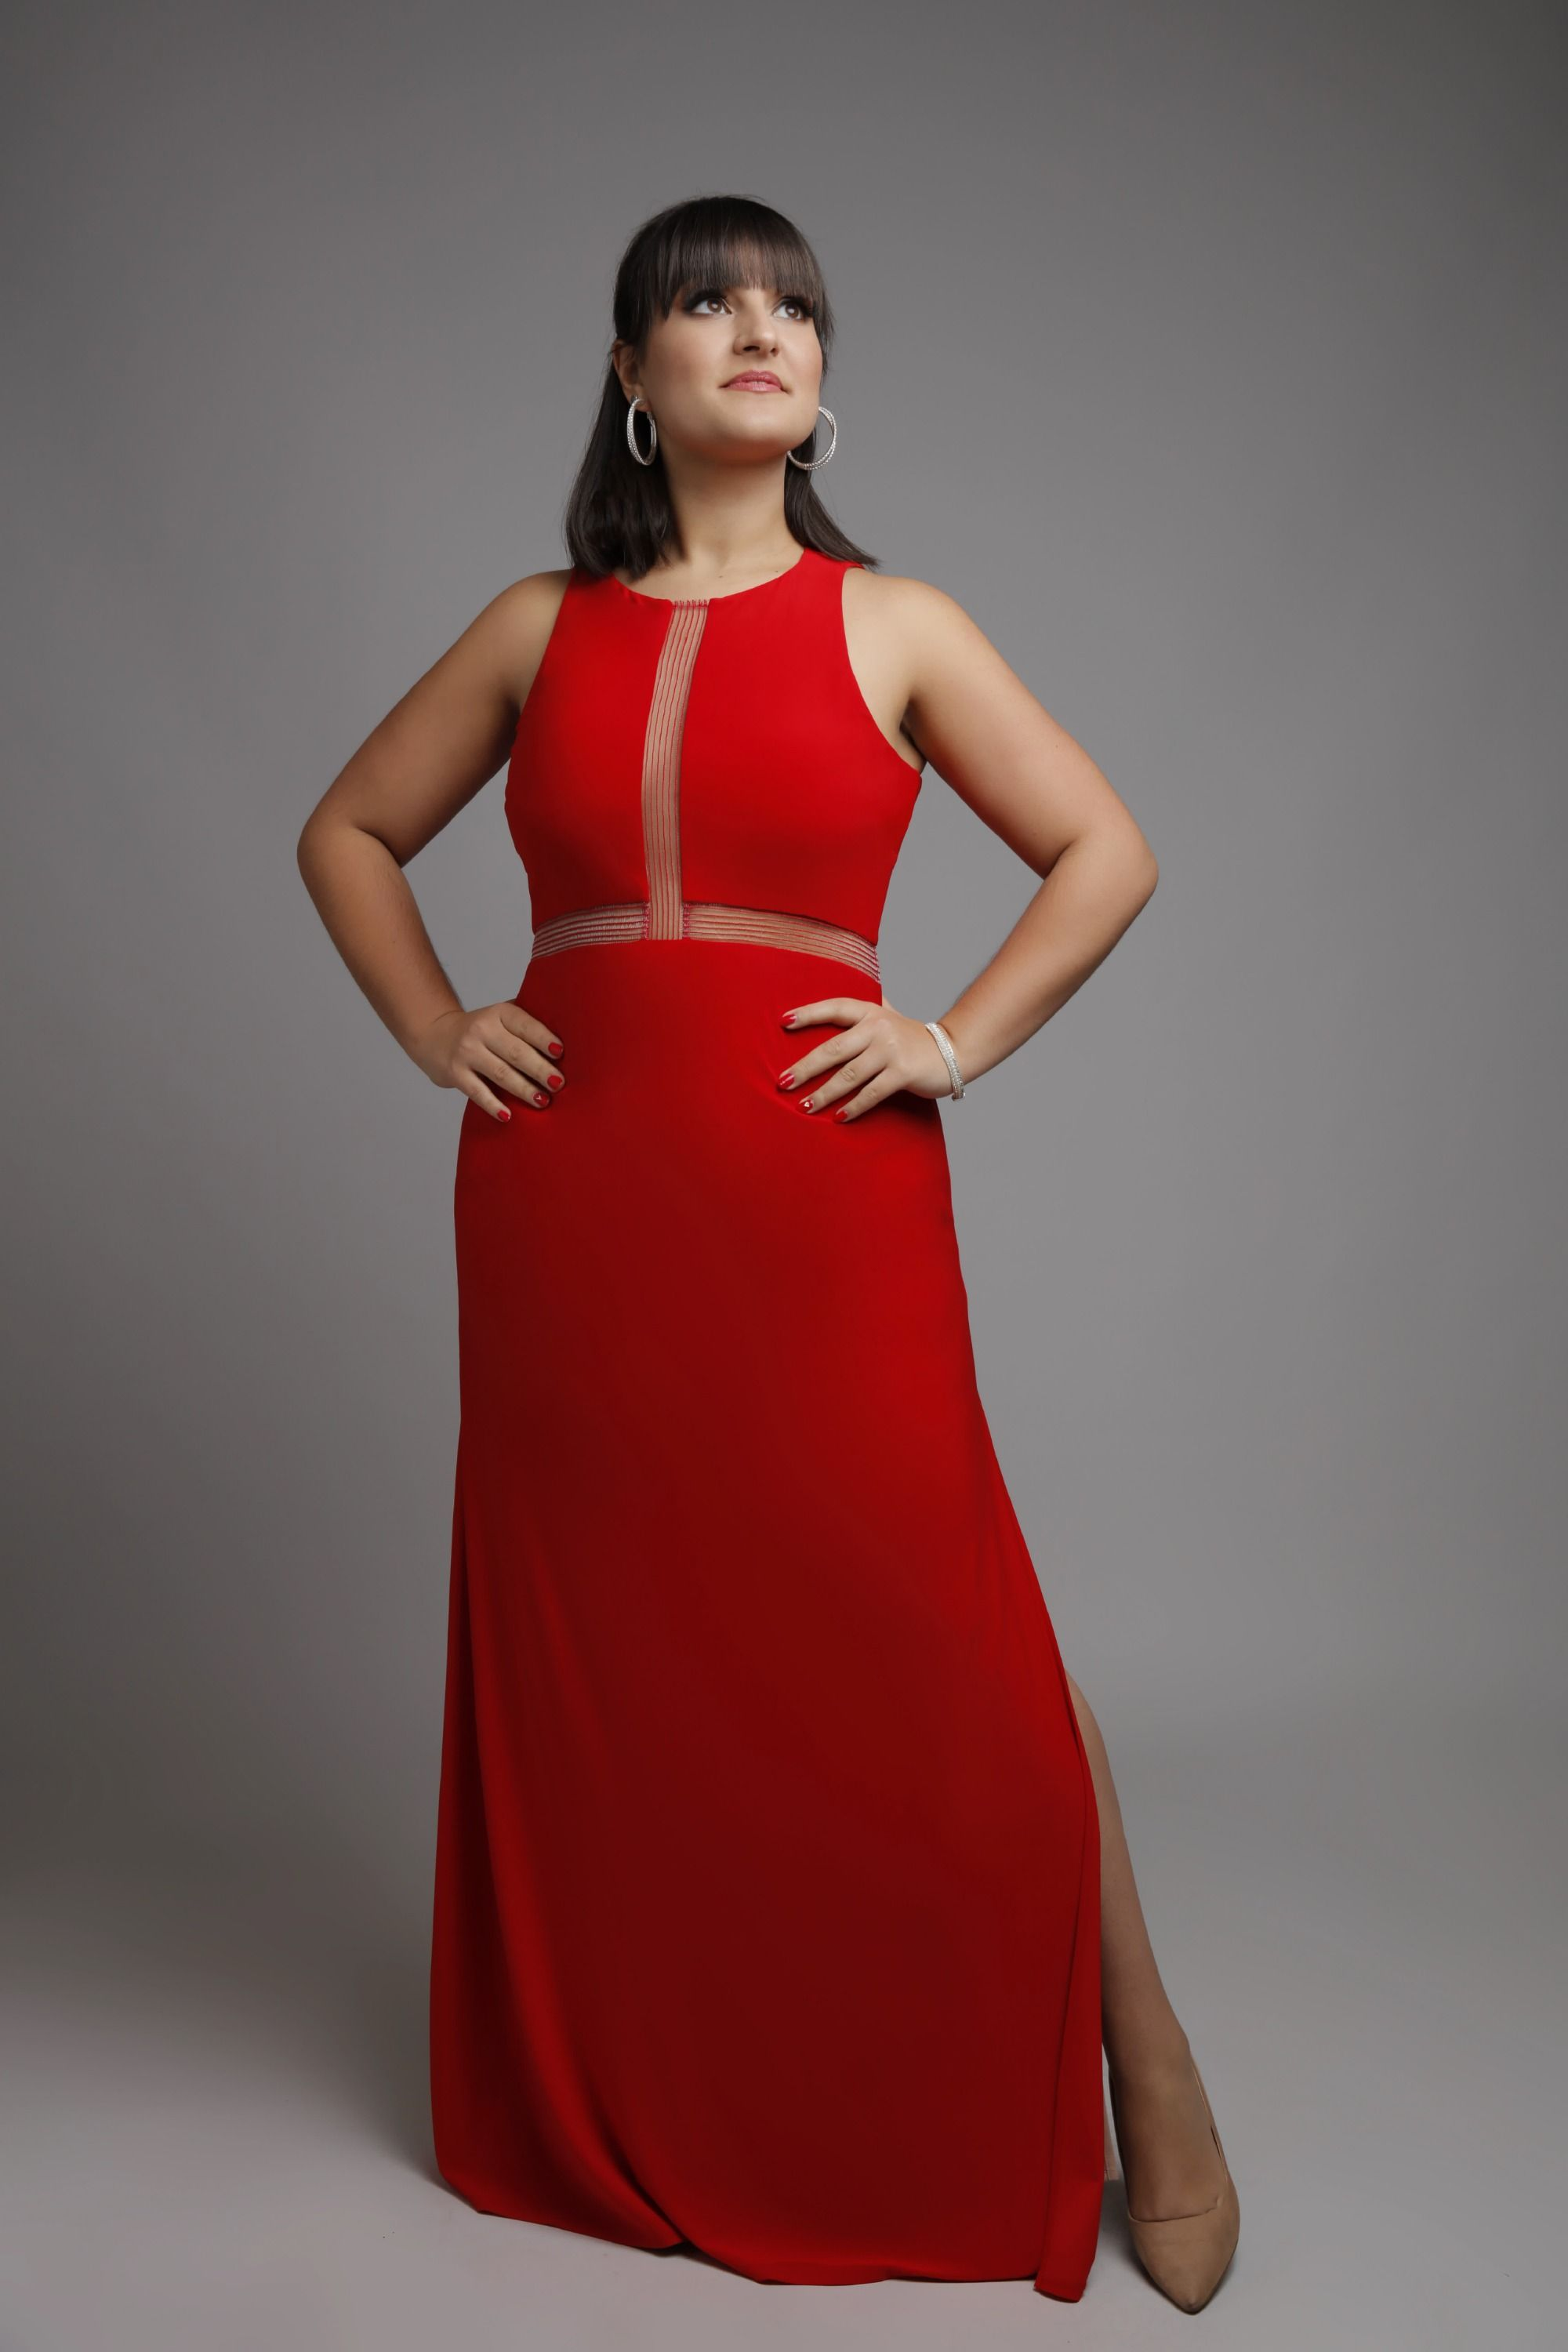 Promo Tereese Classical-Crossover Singer London